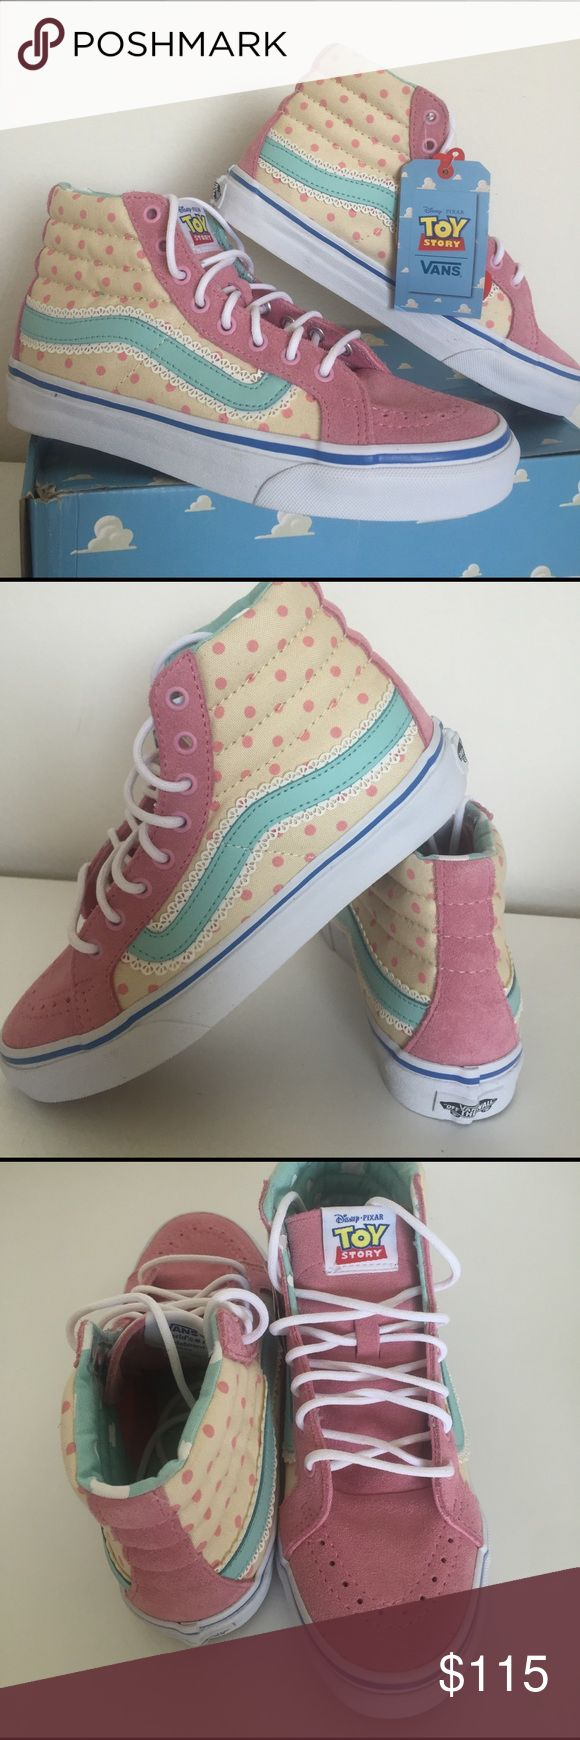 💕ADORABLE💕 Toy Story Bo Peep High Top Vans NEW 💕Superrrr ADORABLE💕 Disney Pixar Toy Story BO PEEP high top Vans. Inspired by Woody's GF, these Bo Peep high top profile shoes feature a pink suede upper, cream and pink polka dot canvas side walls, and a baby blue leather Vans stripe with lace trim. The padded high top collar and lining is just like the wallpaper in Andy's room. No Vans shoe would be complete without the signature waffle tread grip, and the addition of a micro waffle…